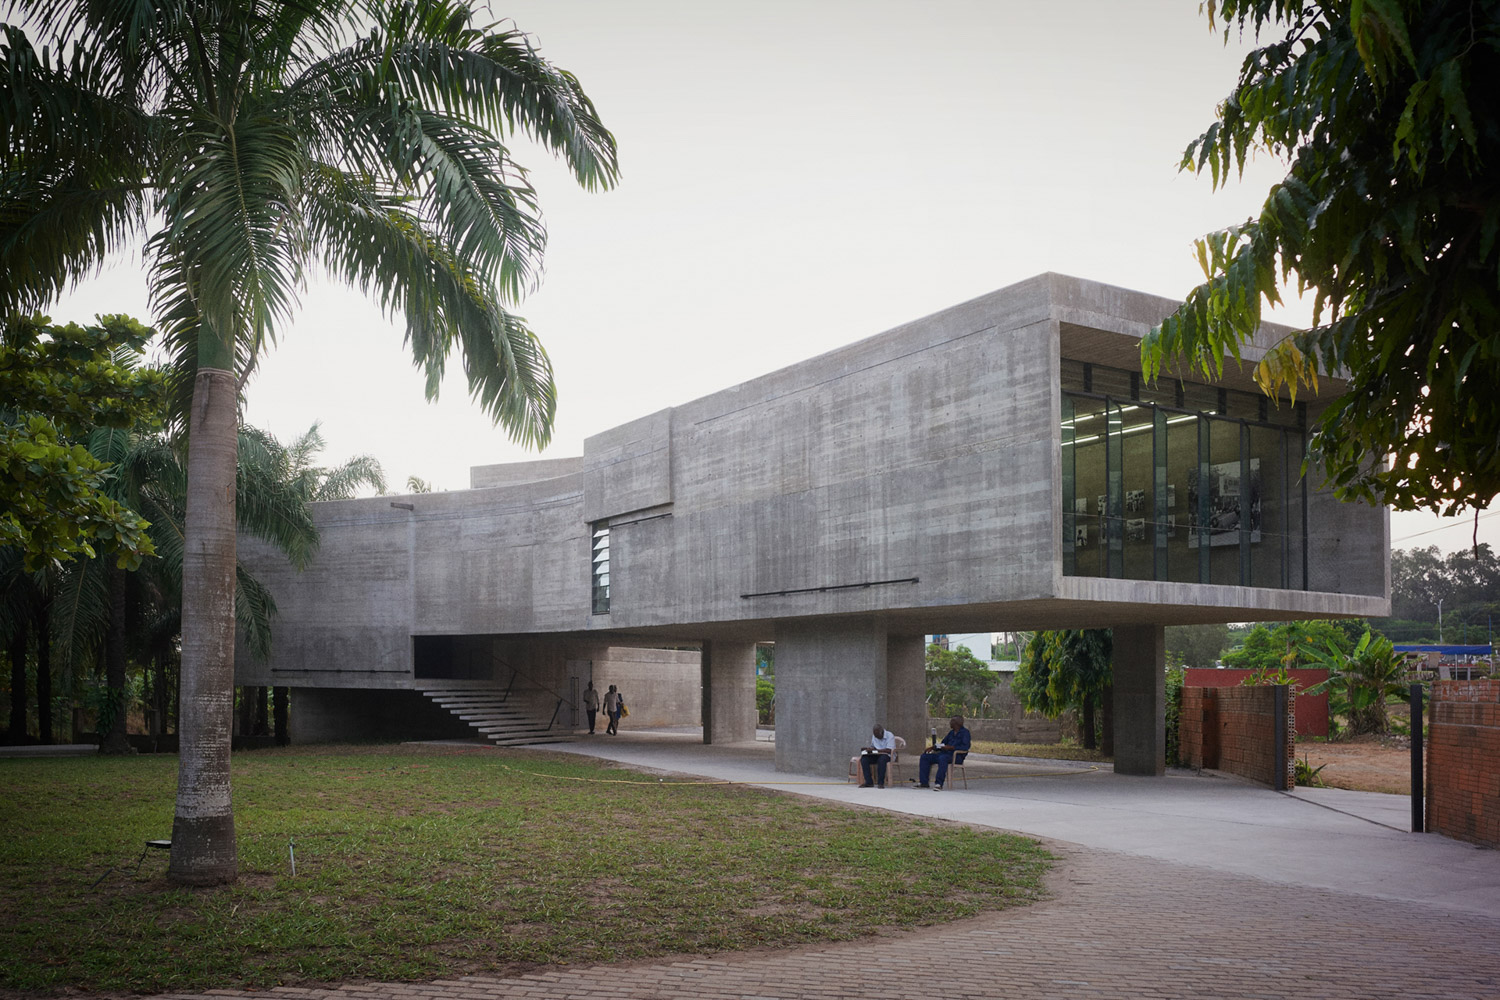 The new gallery building hovers above the existing garden and creates spaces for activities to take place both indoors and outdoors Julien Lanoo